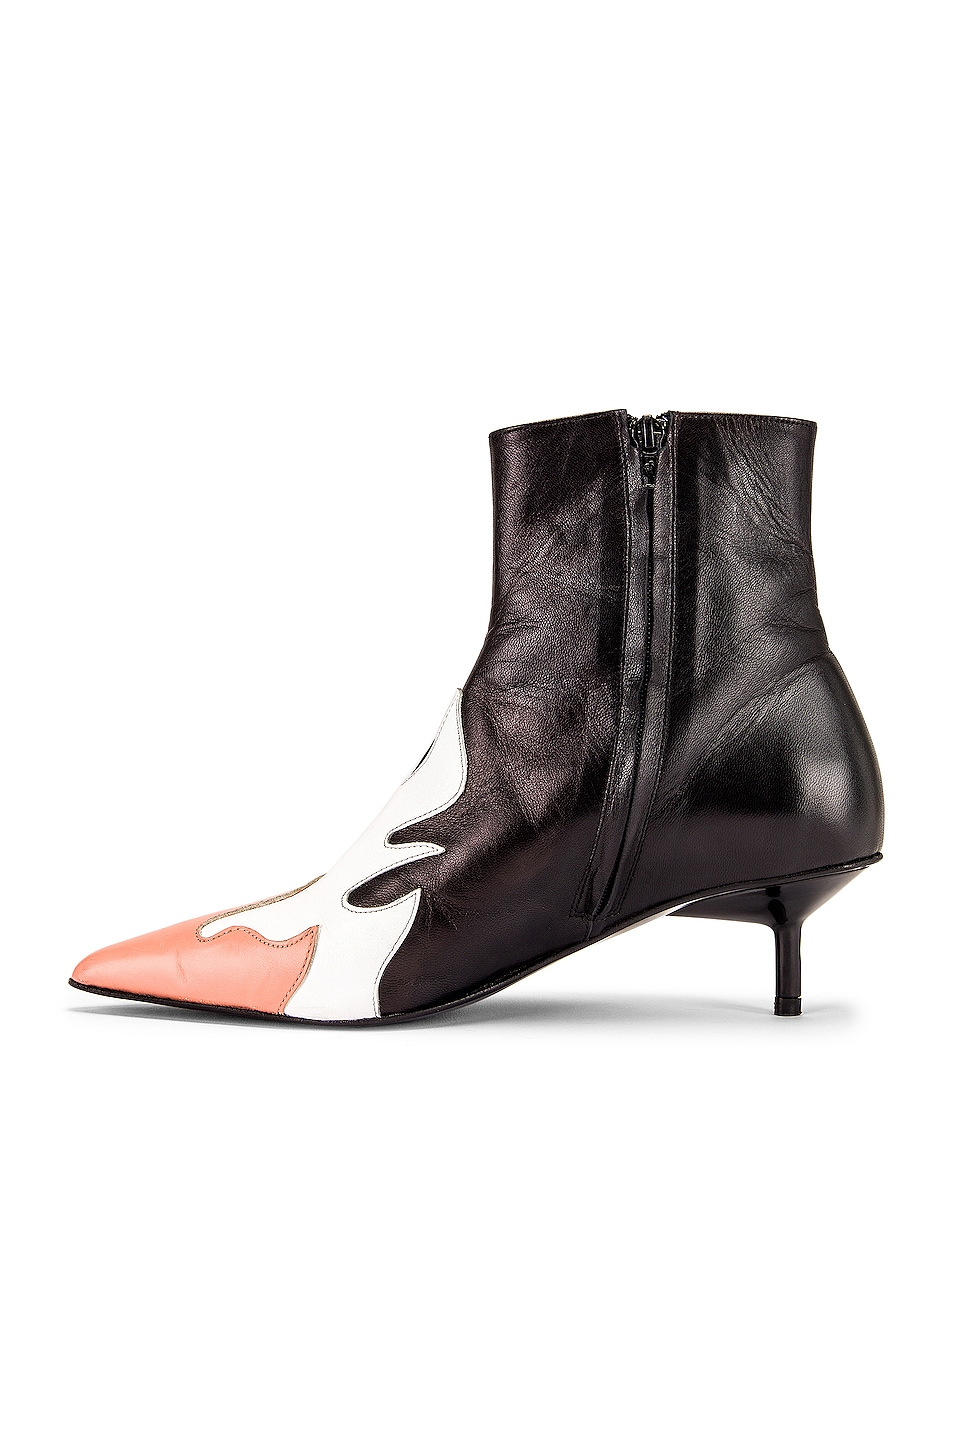 Image 5 of Marques ' Almeida Pointy Kitten Heel Flame Boot in Black, White & Pink